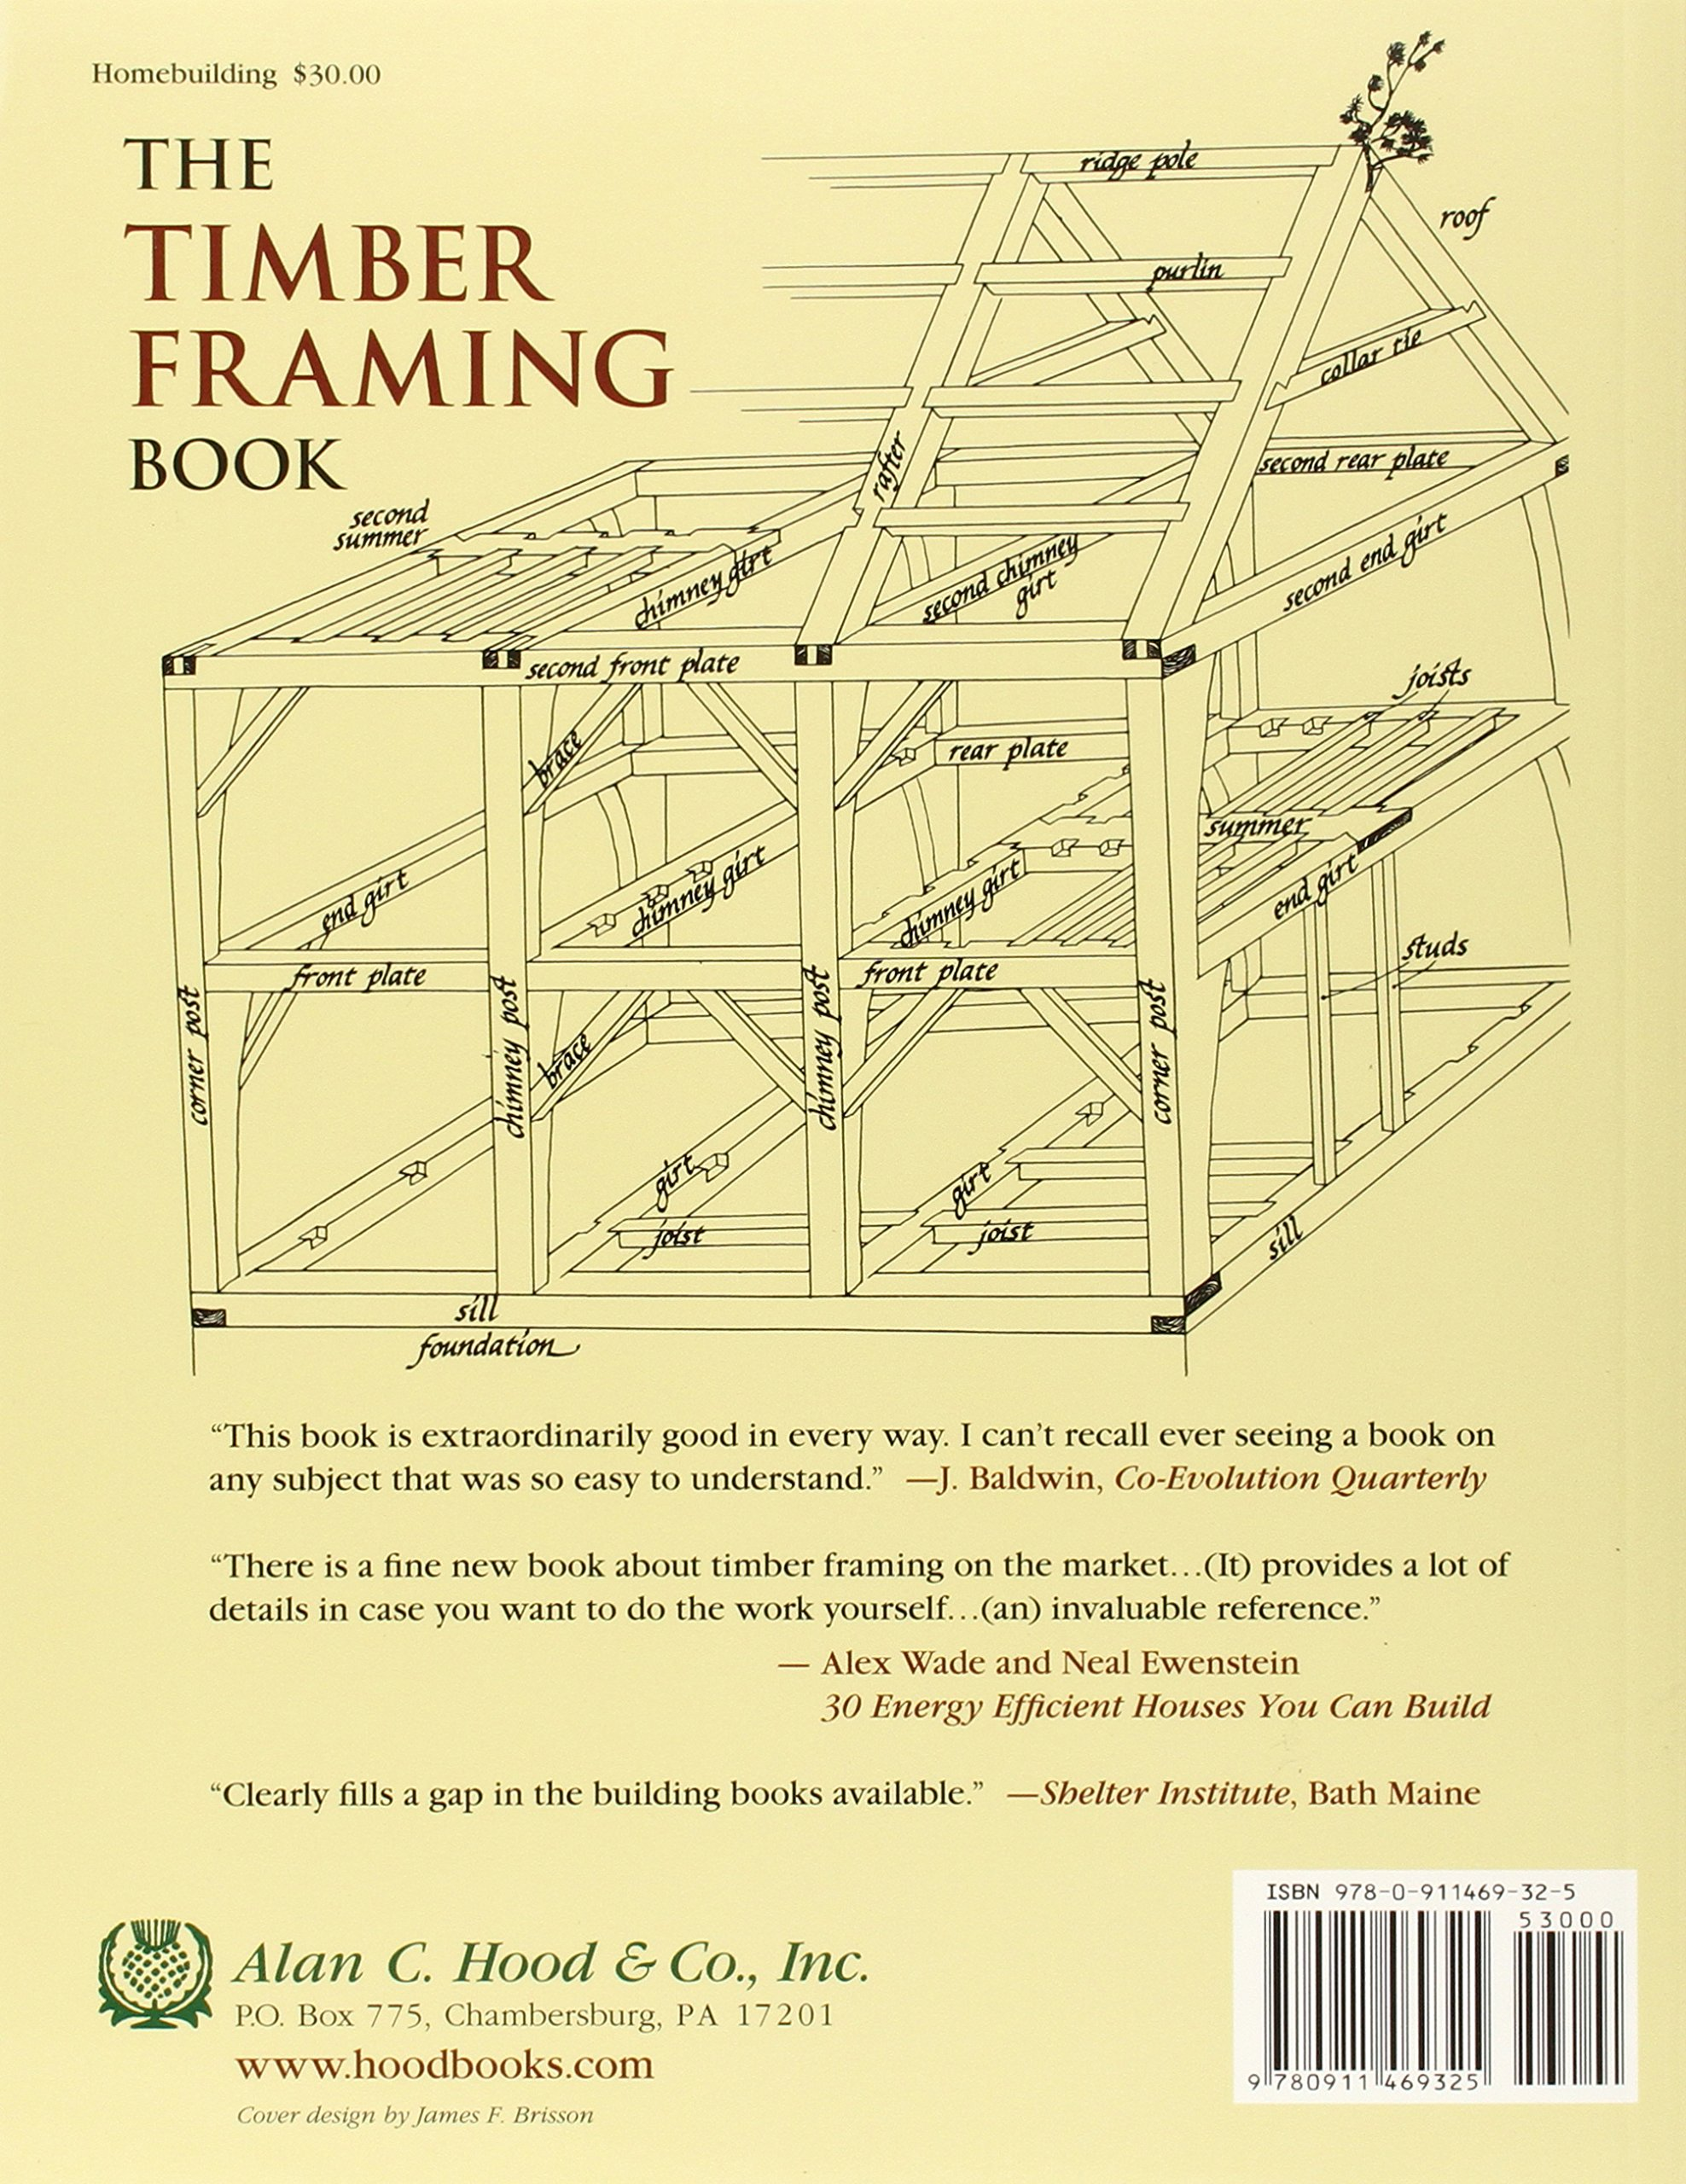 The Timber Framing Book: Amazon.de: Stewart Elliott: Fremdsprachige ...